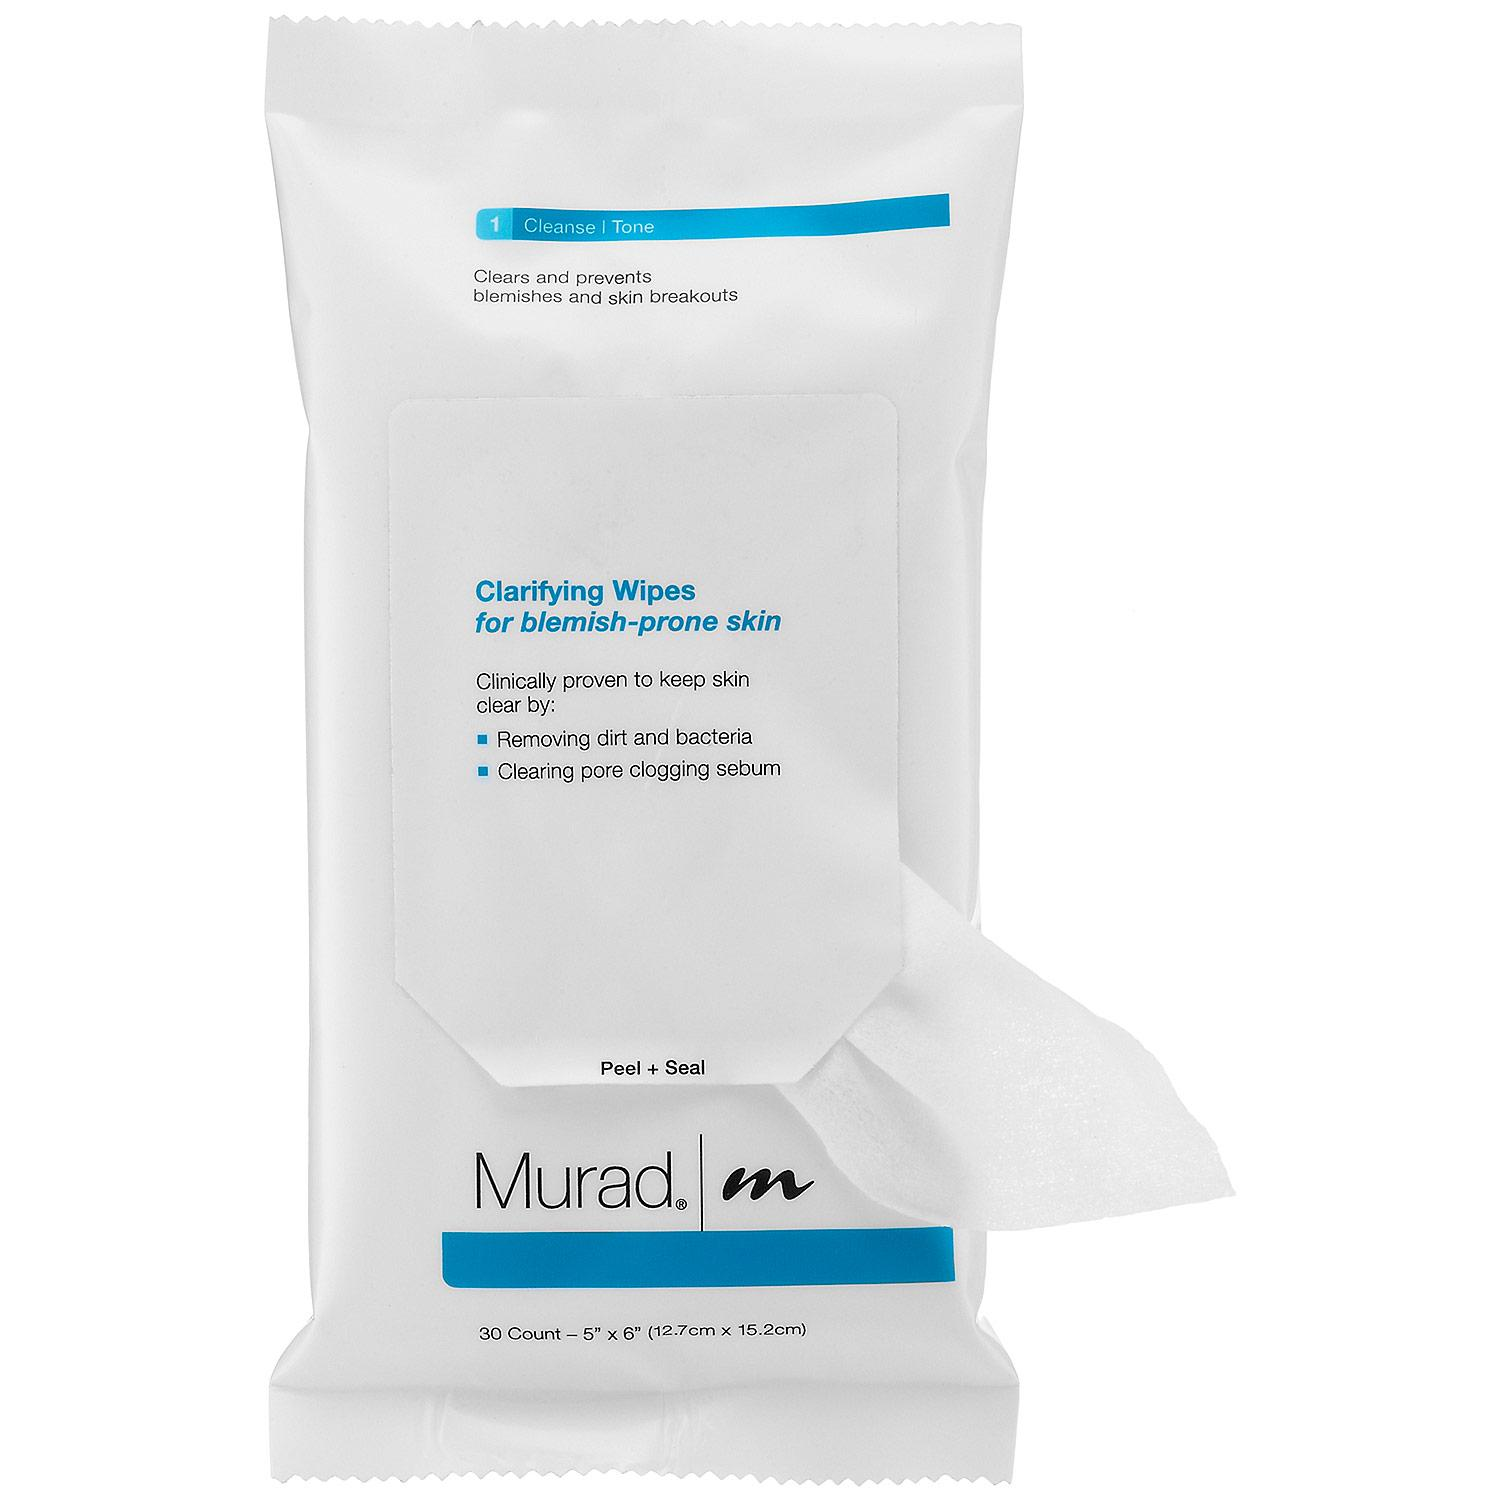 Clarifying Wipes For Blemish-Prone Skin